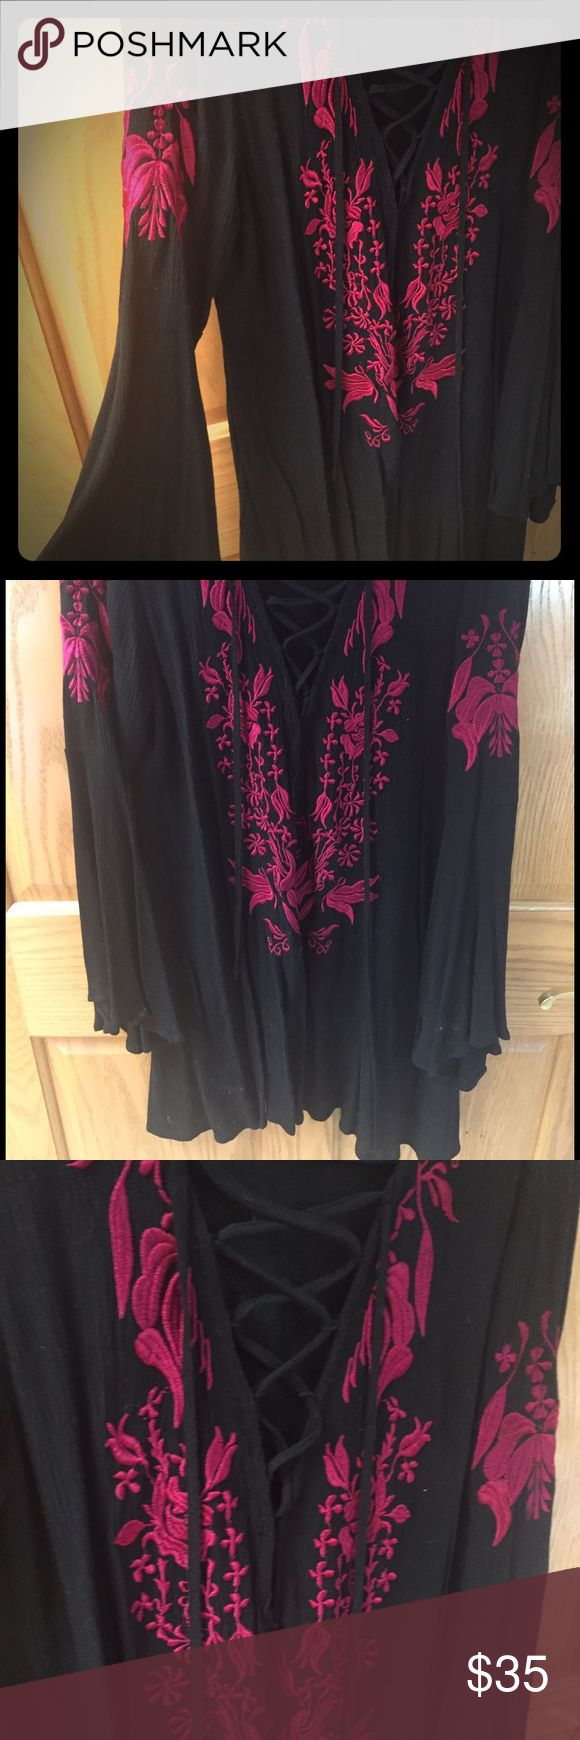 ASOS tie front embroidered tunic/dress.  UK 10/US5 ASOS tunic or dress.  Hits just above knee on 5'6.  Black with maroon embroidery. ASOS Tops Tunics